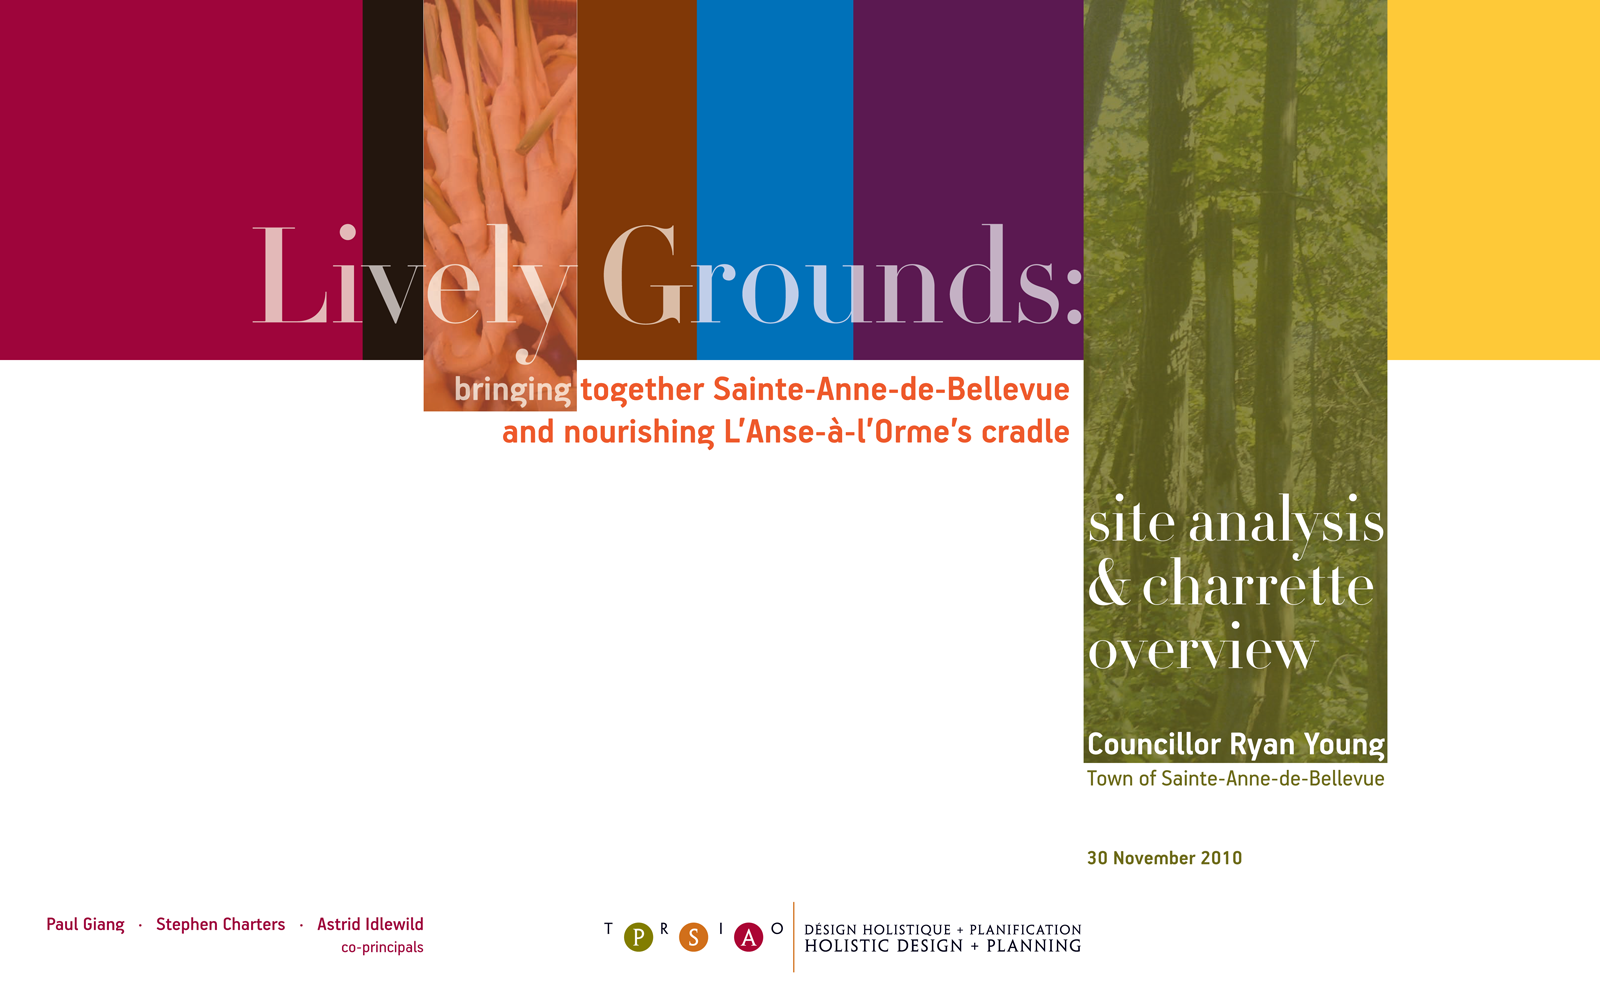 2010.11.30 Lively Grounds cover